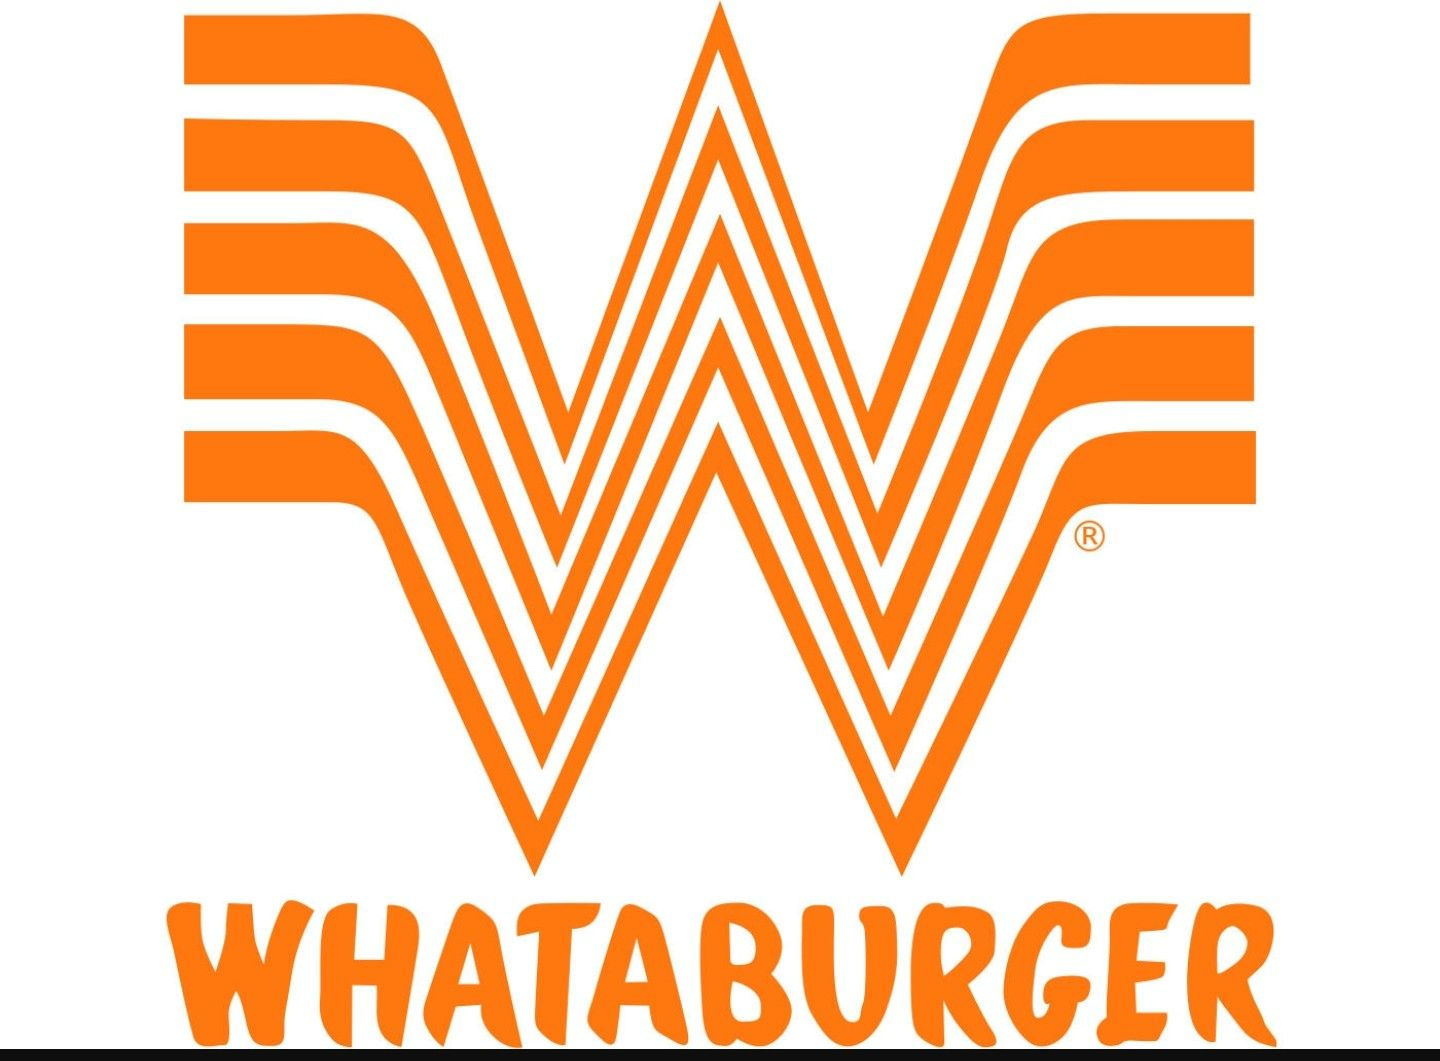 Pin by Tomas Infante on images for yeti cup Whataburger